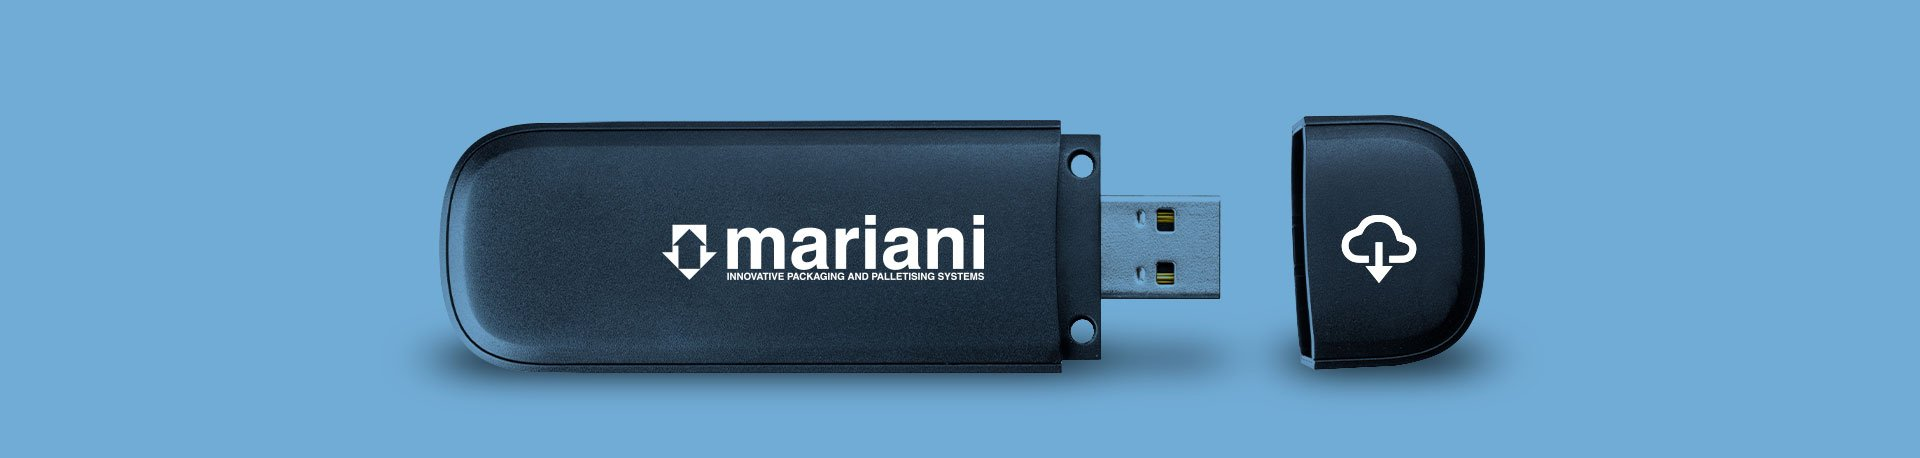 Area download banner - Mariani Srl